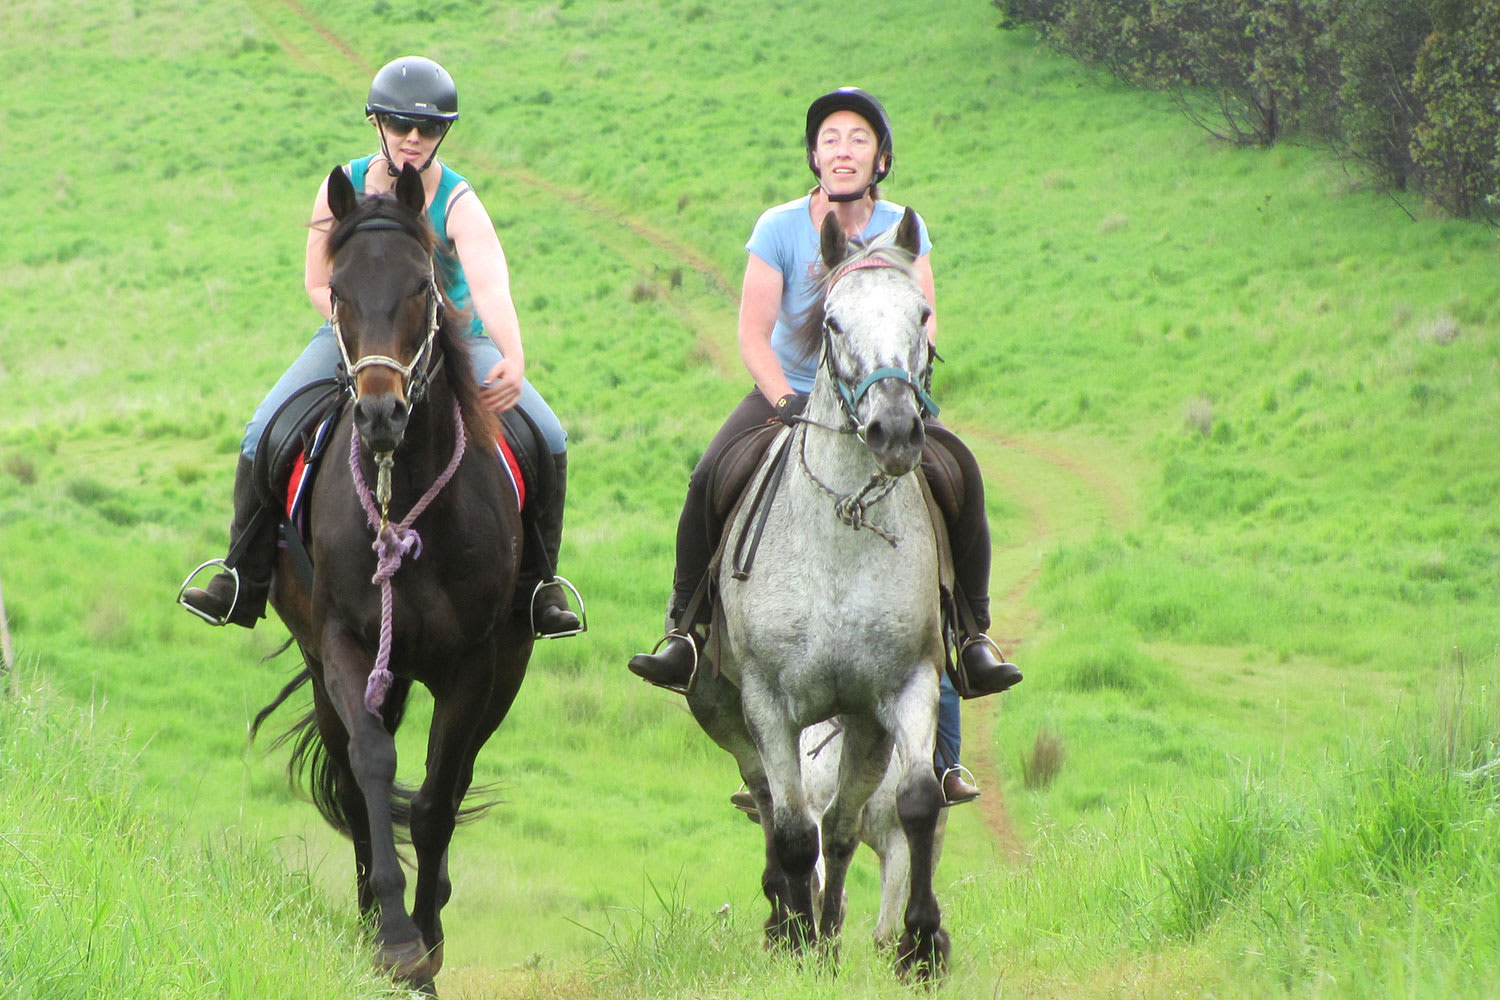 Kimberley Horse Riding, 2 Hours - Launceston, Tasmania